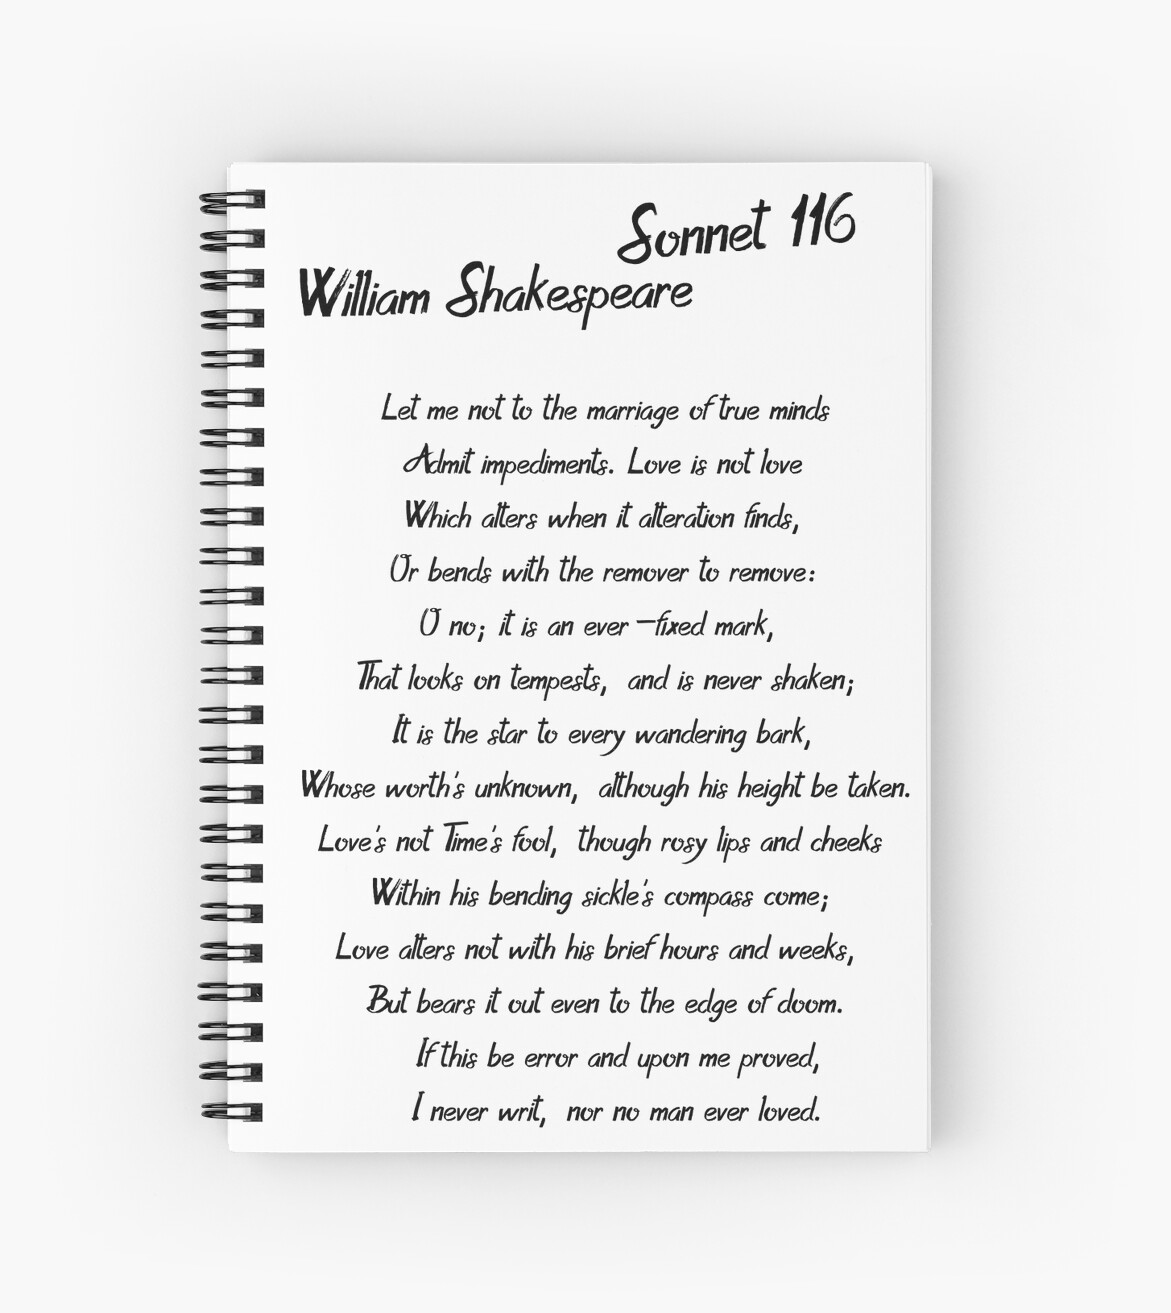 sonnet 116 by william shakespeare 2 essay Sonnet 116 is one of the best-known and most beloved poems in william shakespeare's sonnet sequence this says a lot, since this group of 154 poems on the whole is probably the world's most famous collection of love poetry.